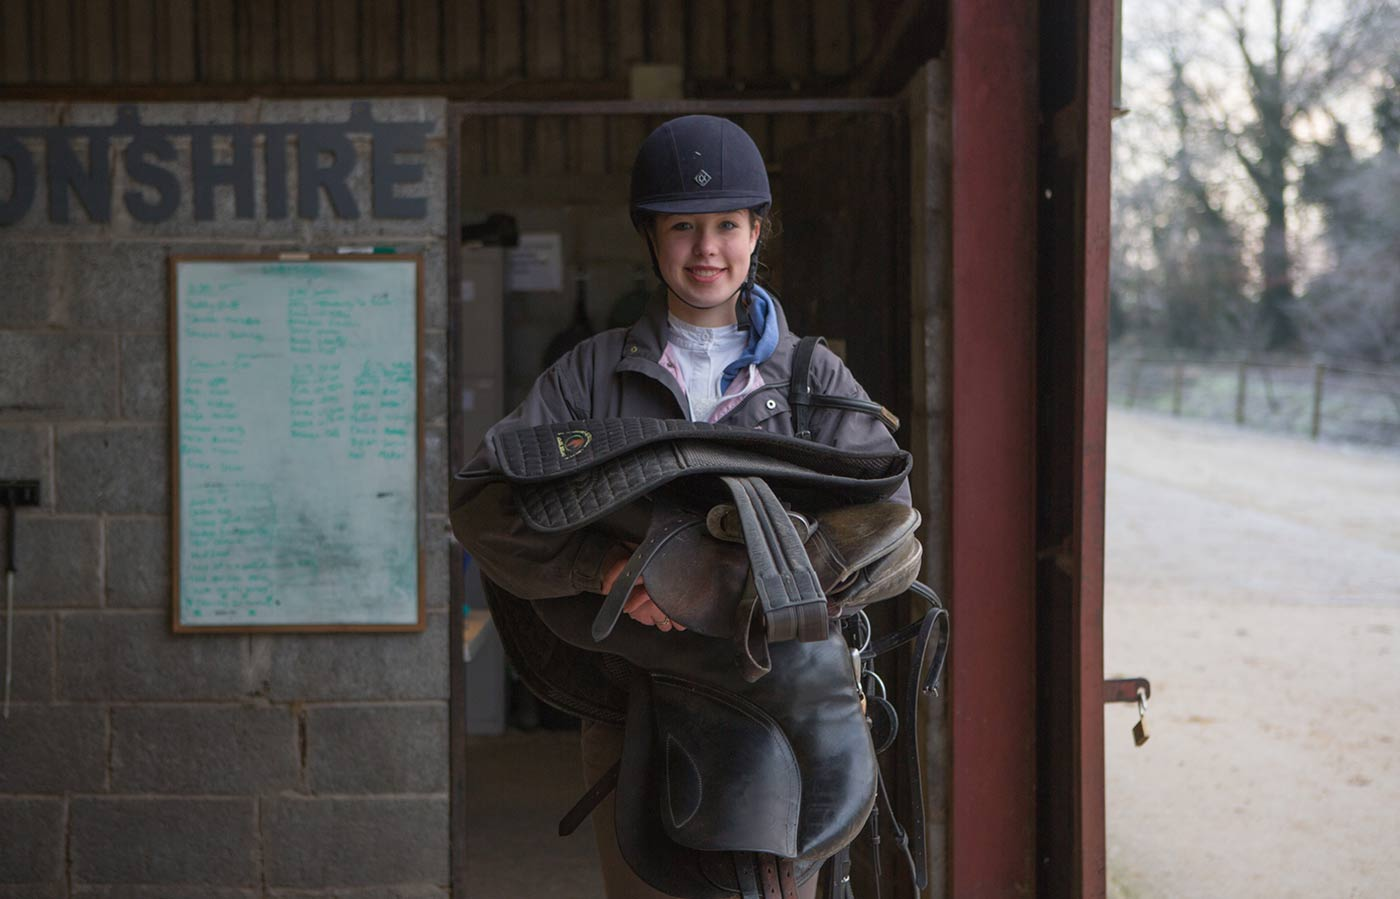 UL Undergrad Video and photography production featuring student getting geared up for horseriding